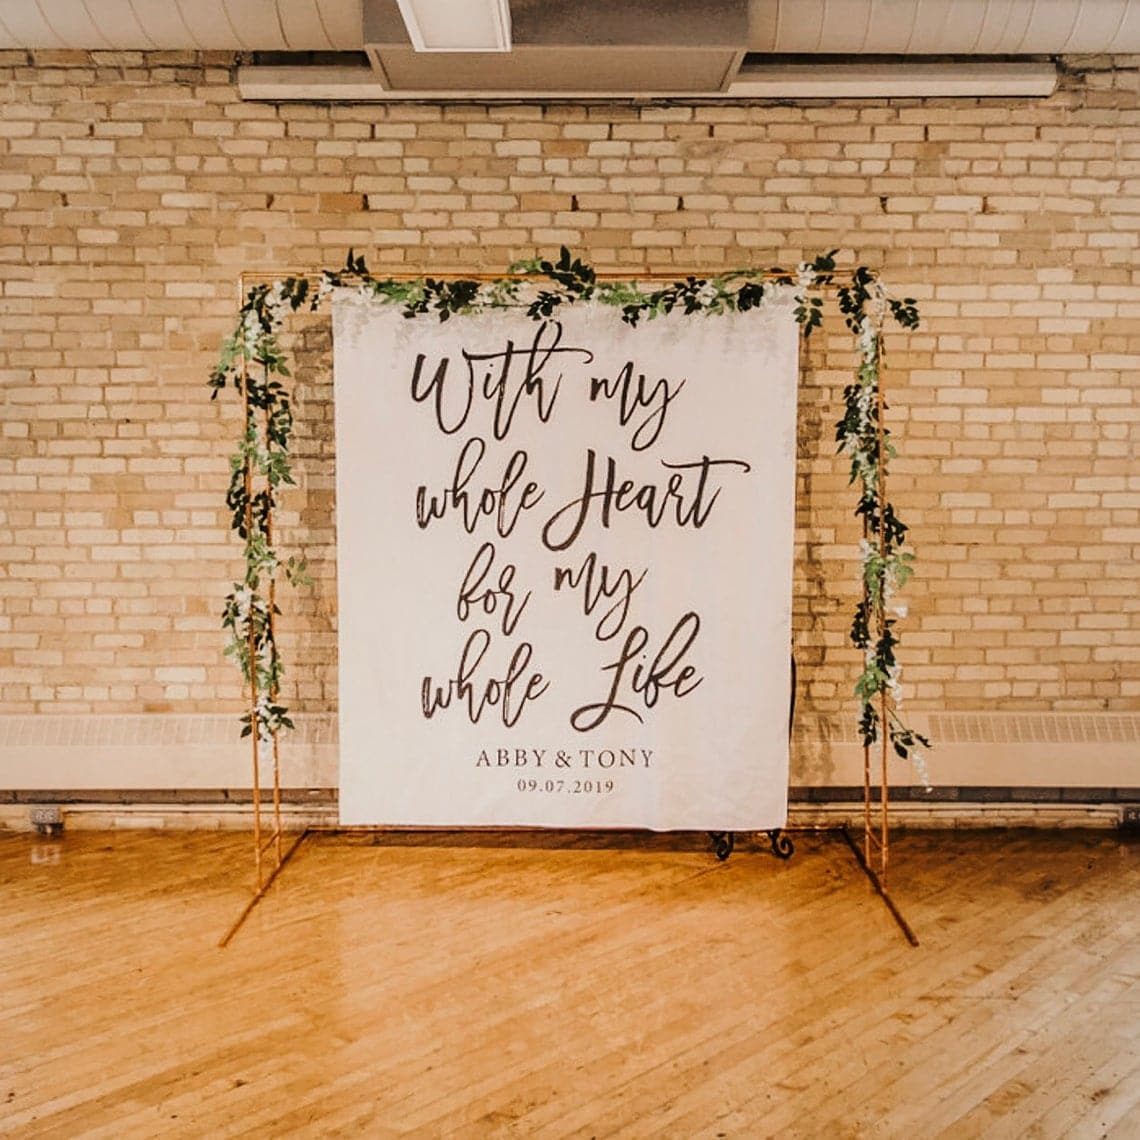 ceremony backdrop and altar ideas